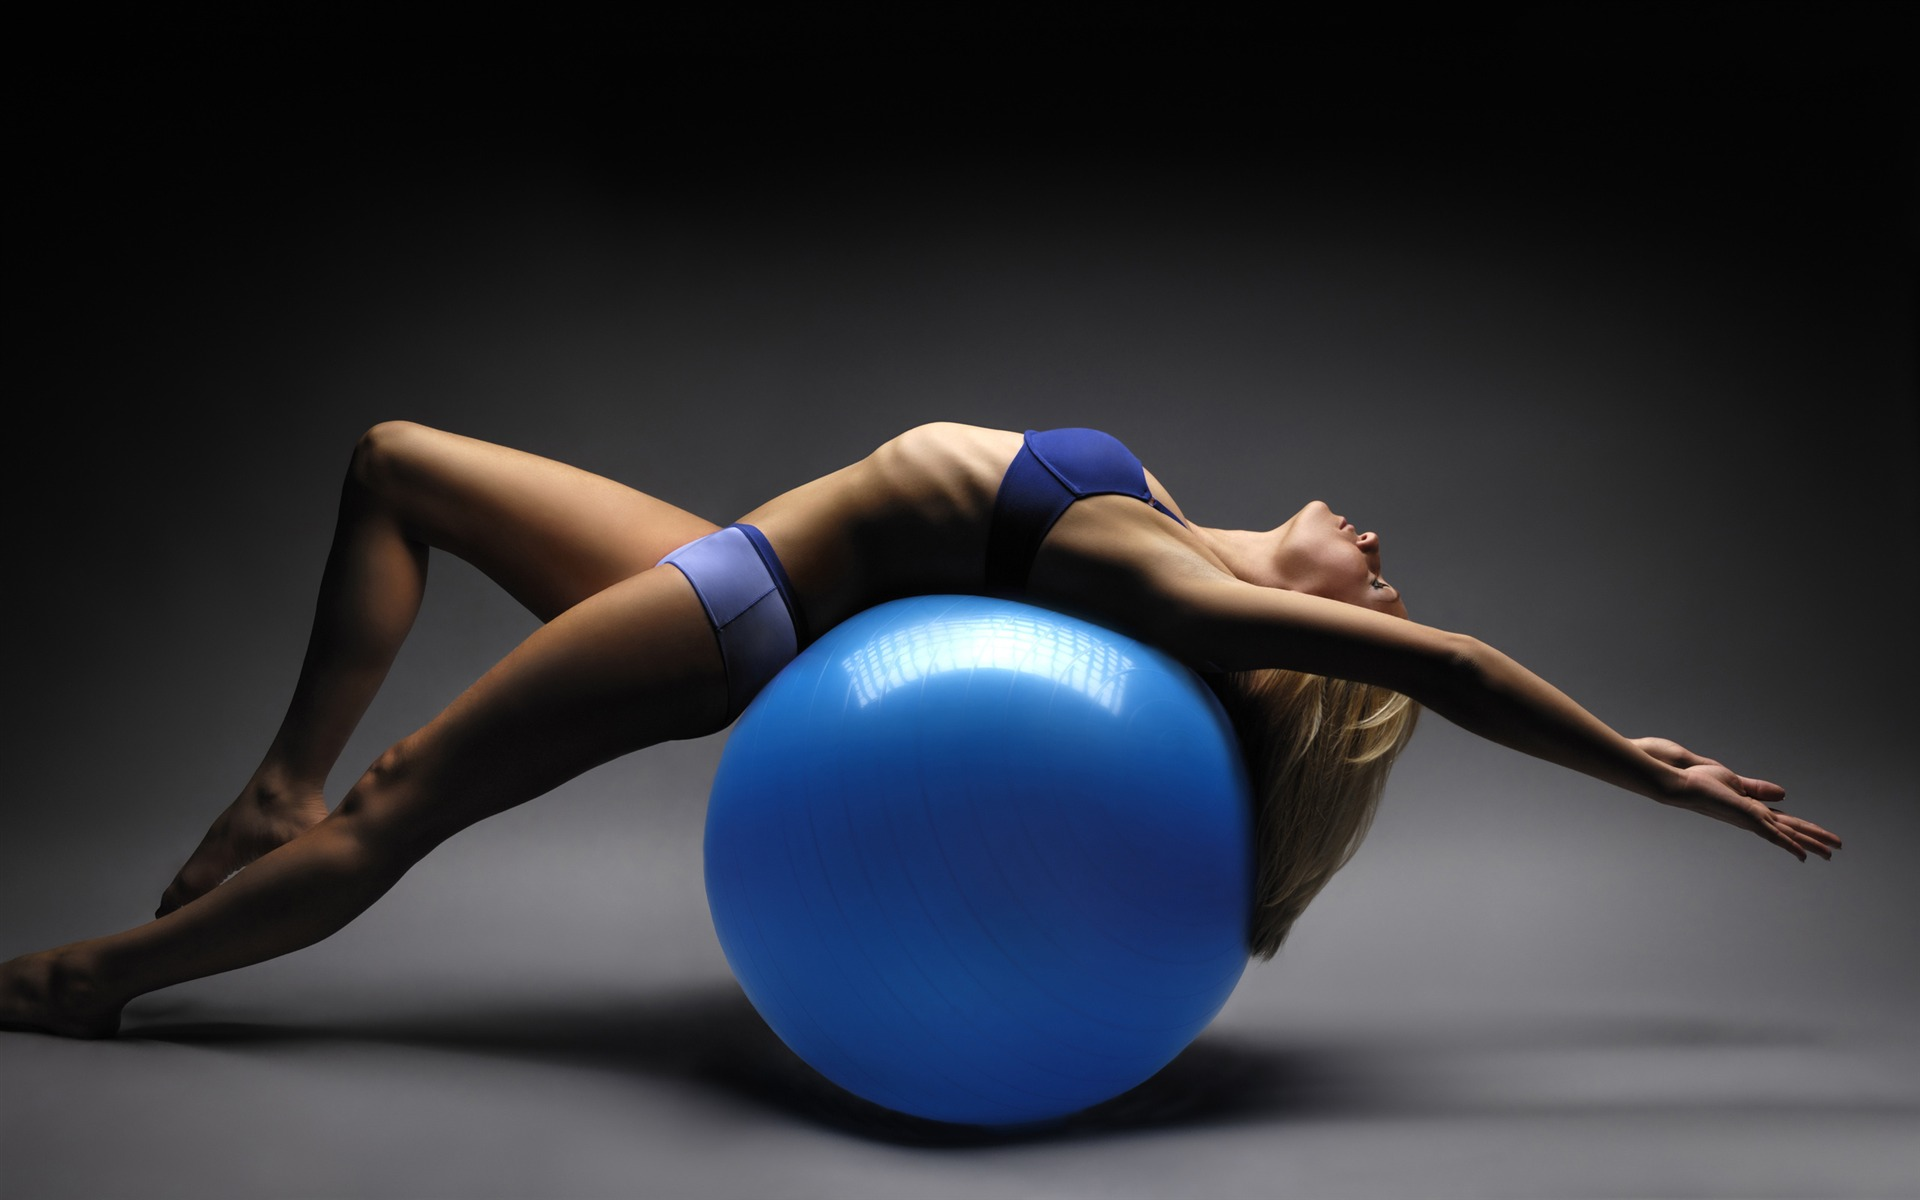 Girl training on gym ball photo wallpaper 1920x1200